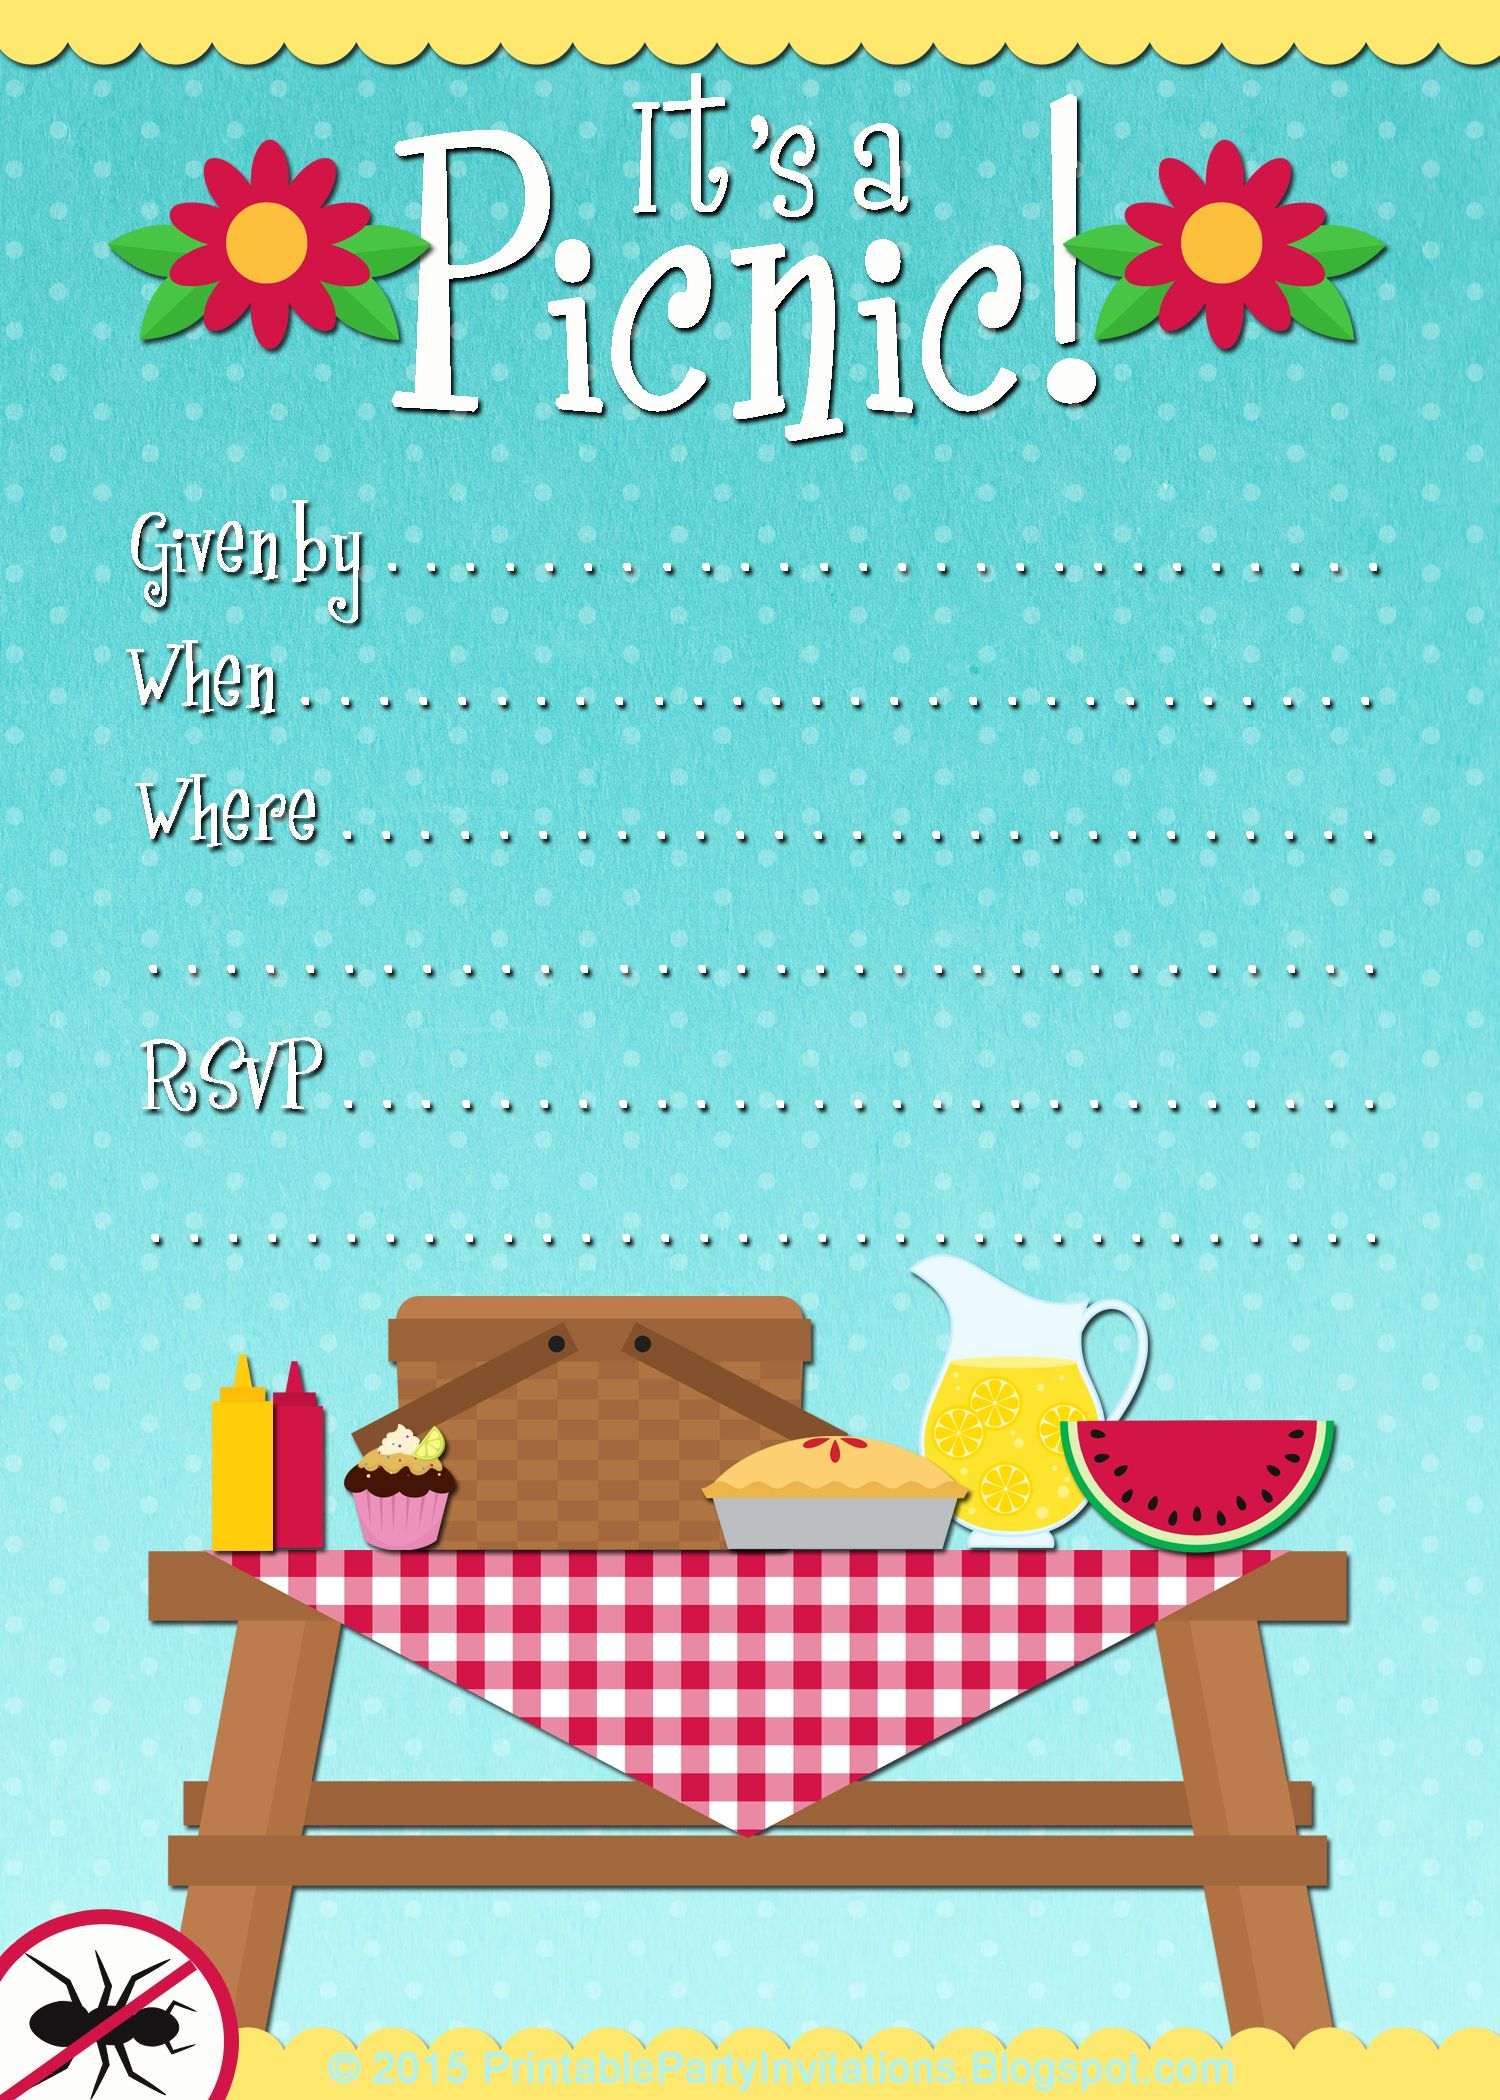 graphic regarding Free Printable Picnic Invitation Template identify Absolutely free Printable Picnic Invitation Template #picnicinvitation